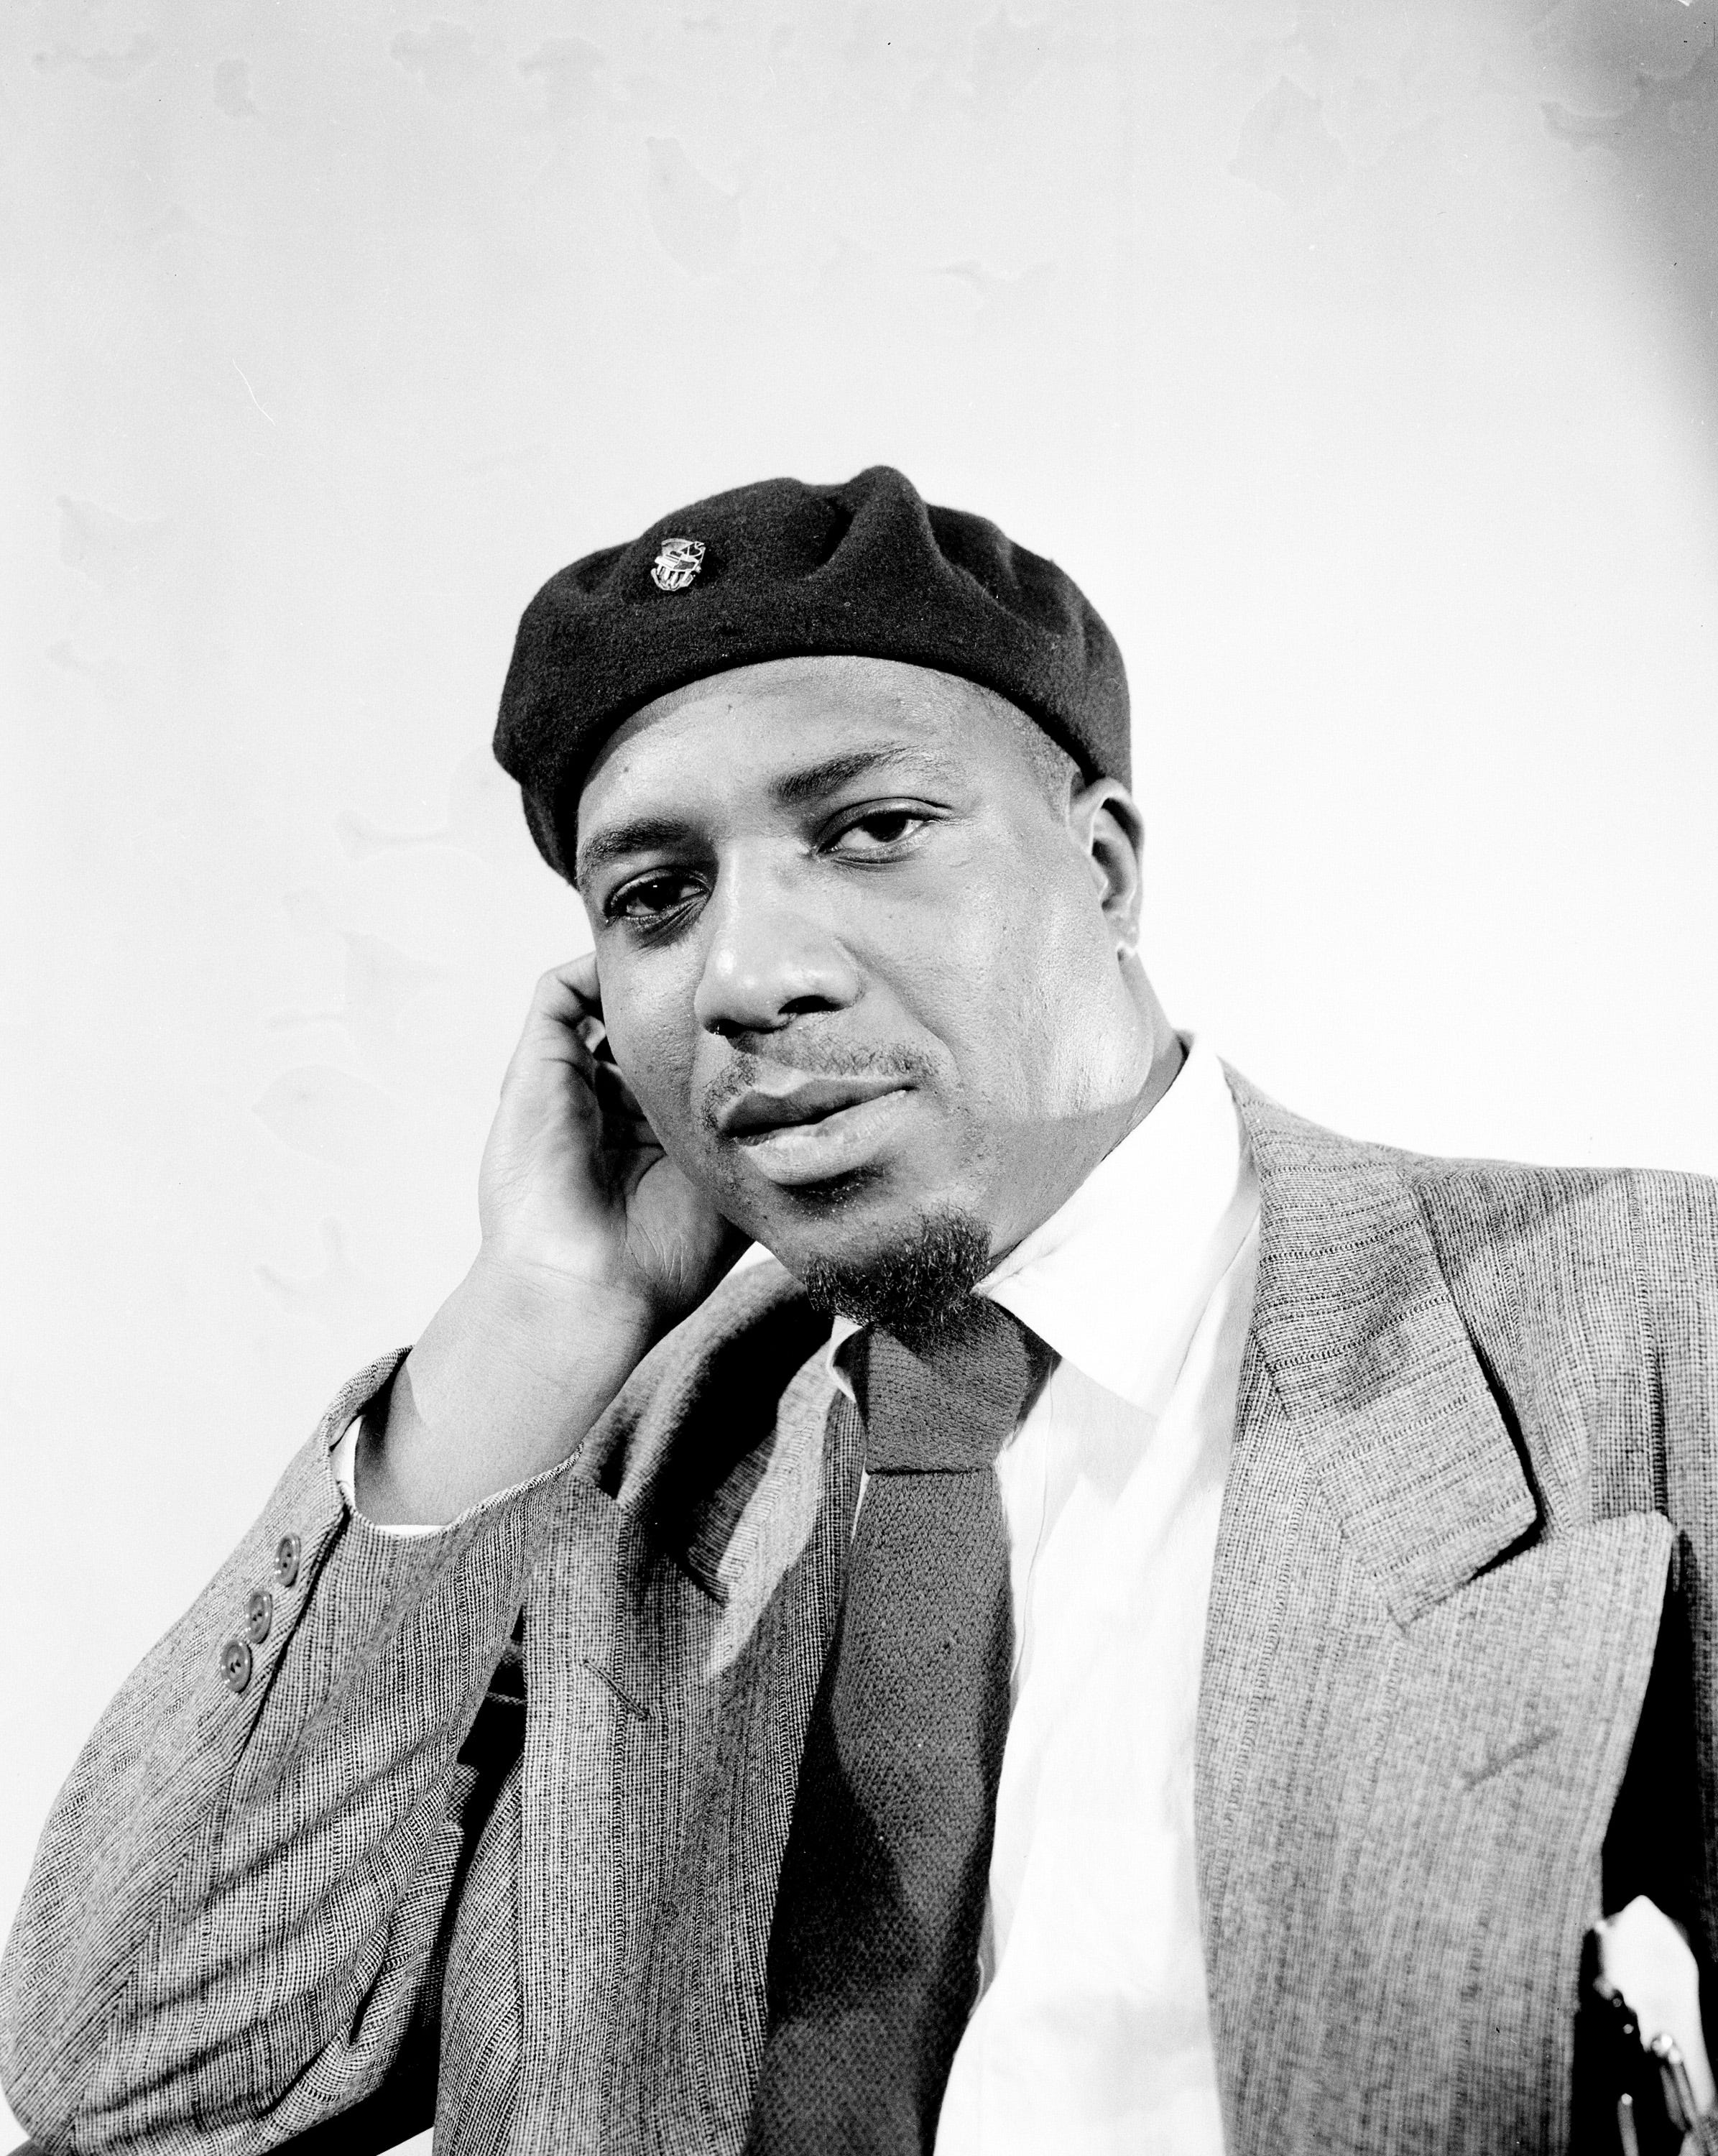 Jazz pianist and composer Thelonious Monk poses in January 1949.